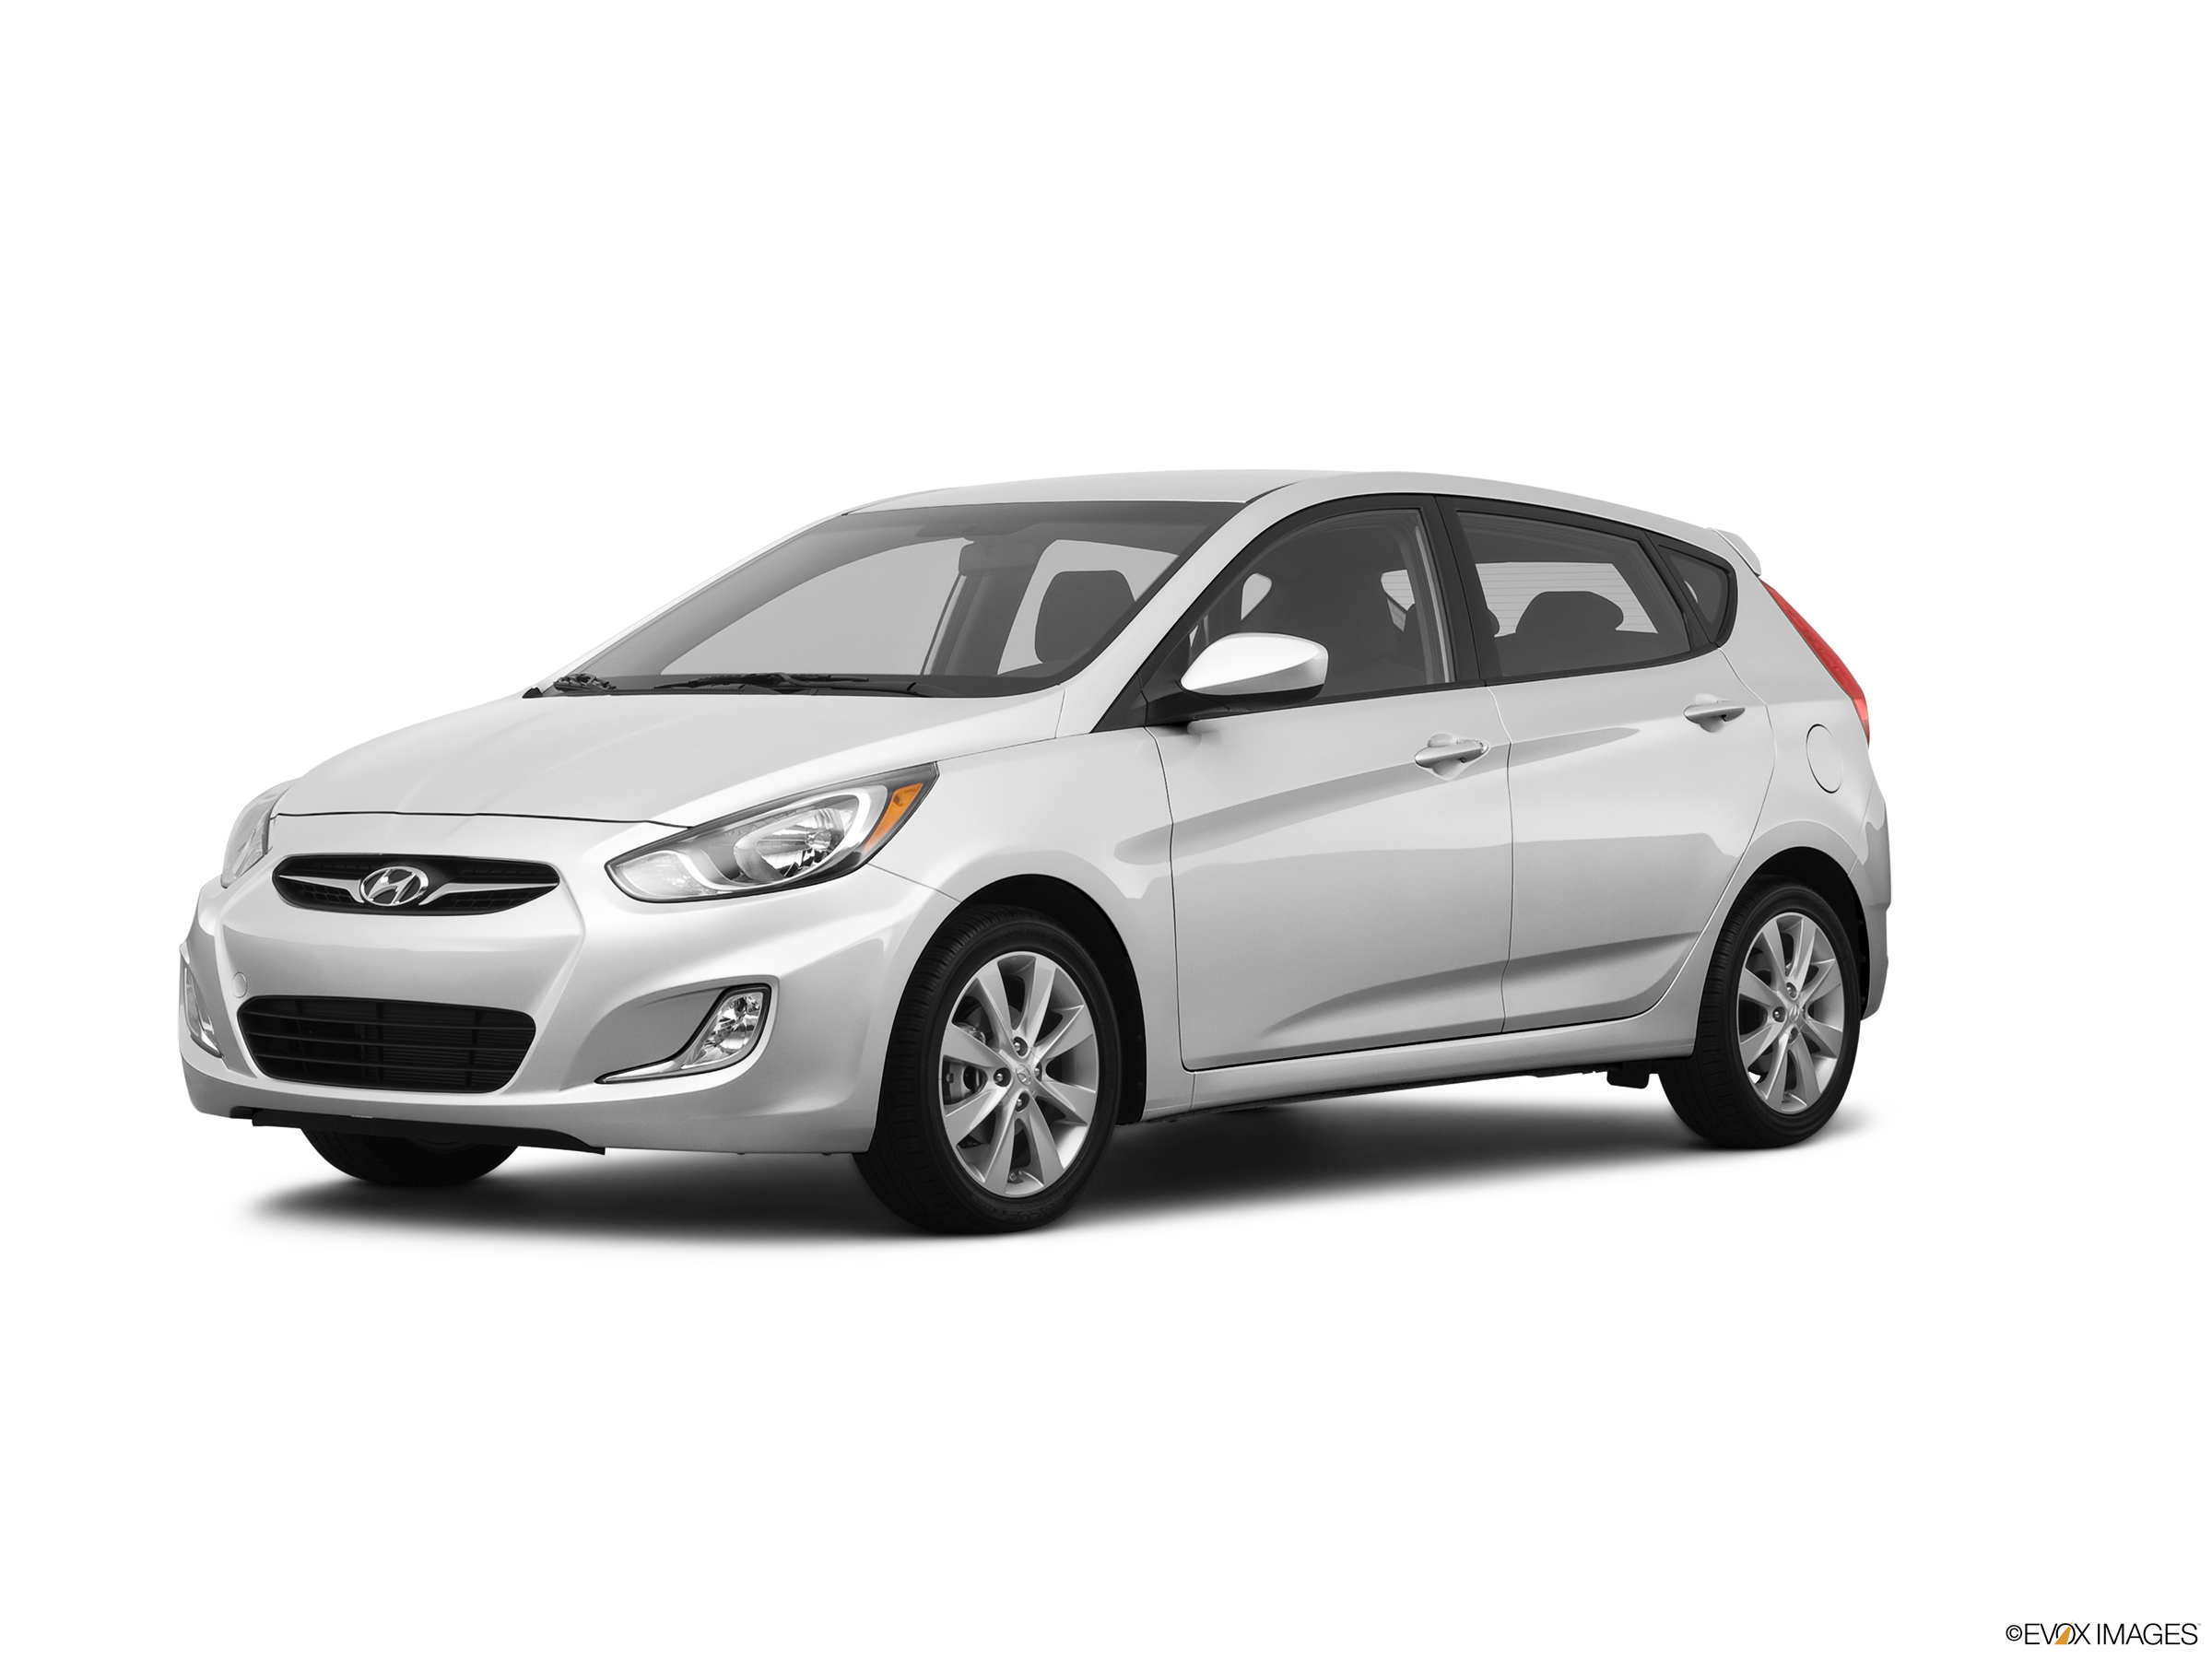 2012 hyundai accent values cars for sale kelley blue book 2012 hyundai accent values cars for